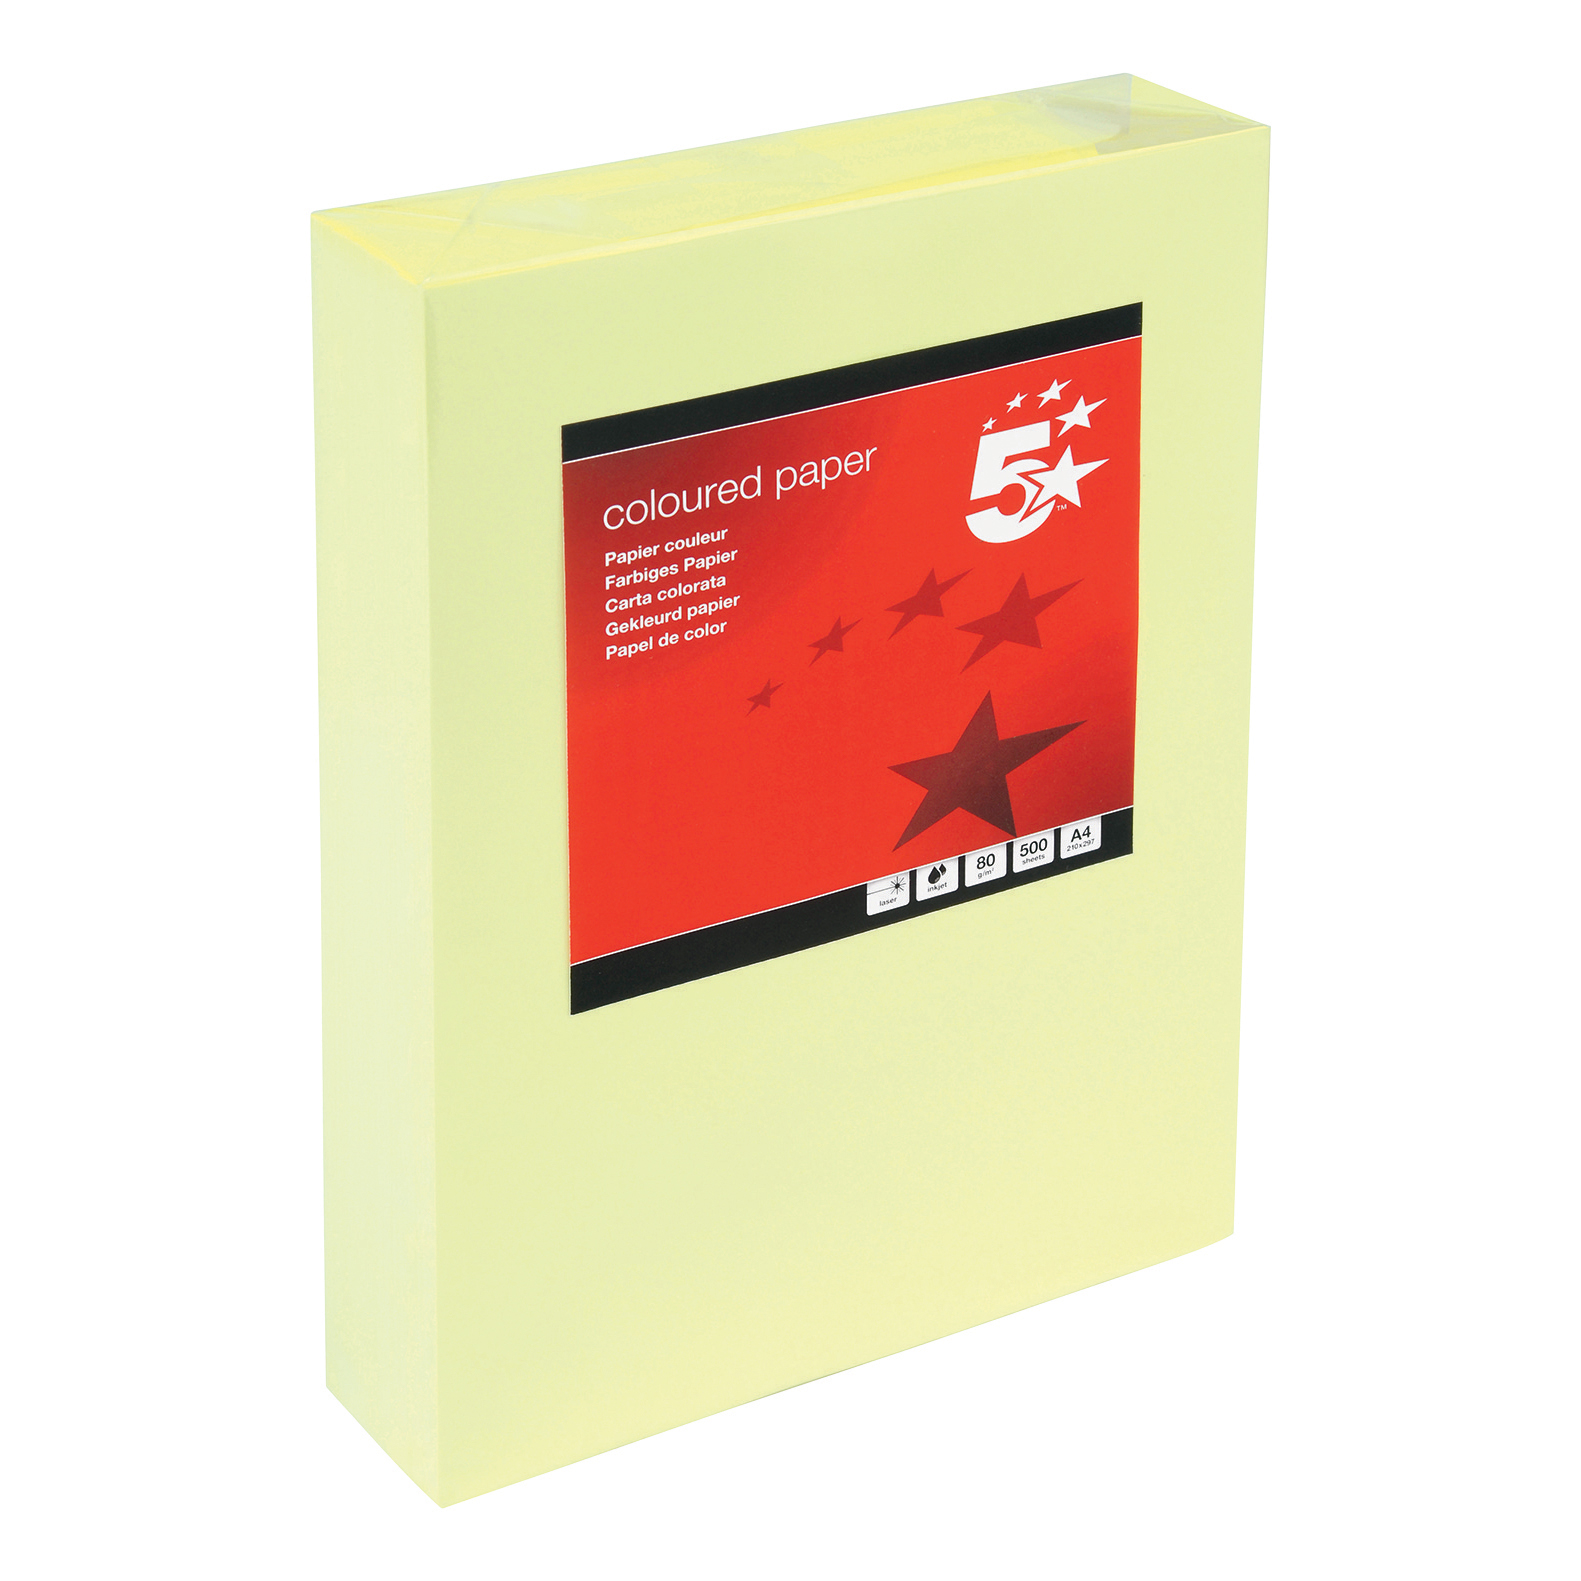 5 Star Office Coloured Copier Paper Multifunctional Ream-Wrapped 80gsm A4 Light Yellow 500 Sheets